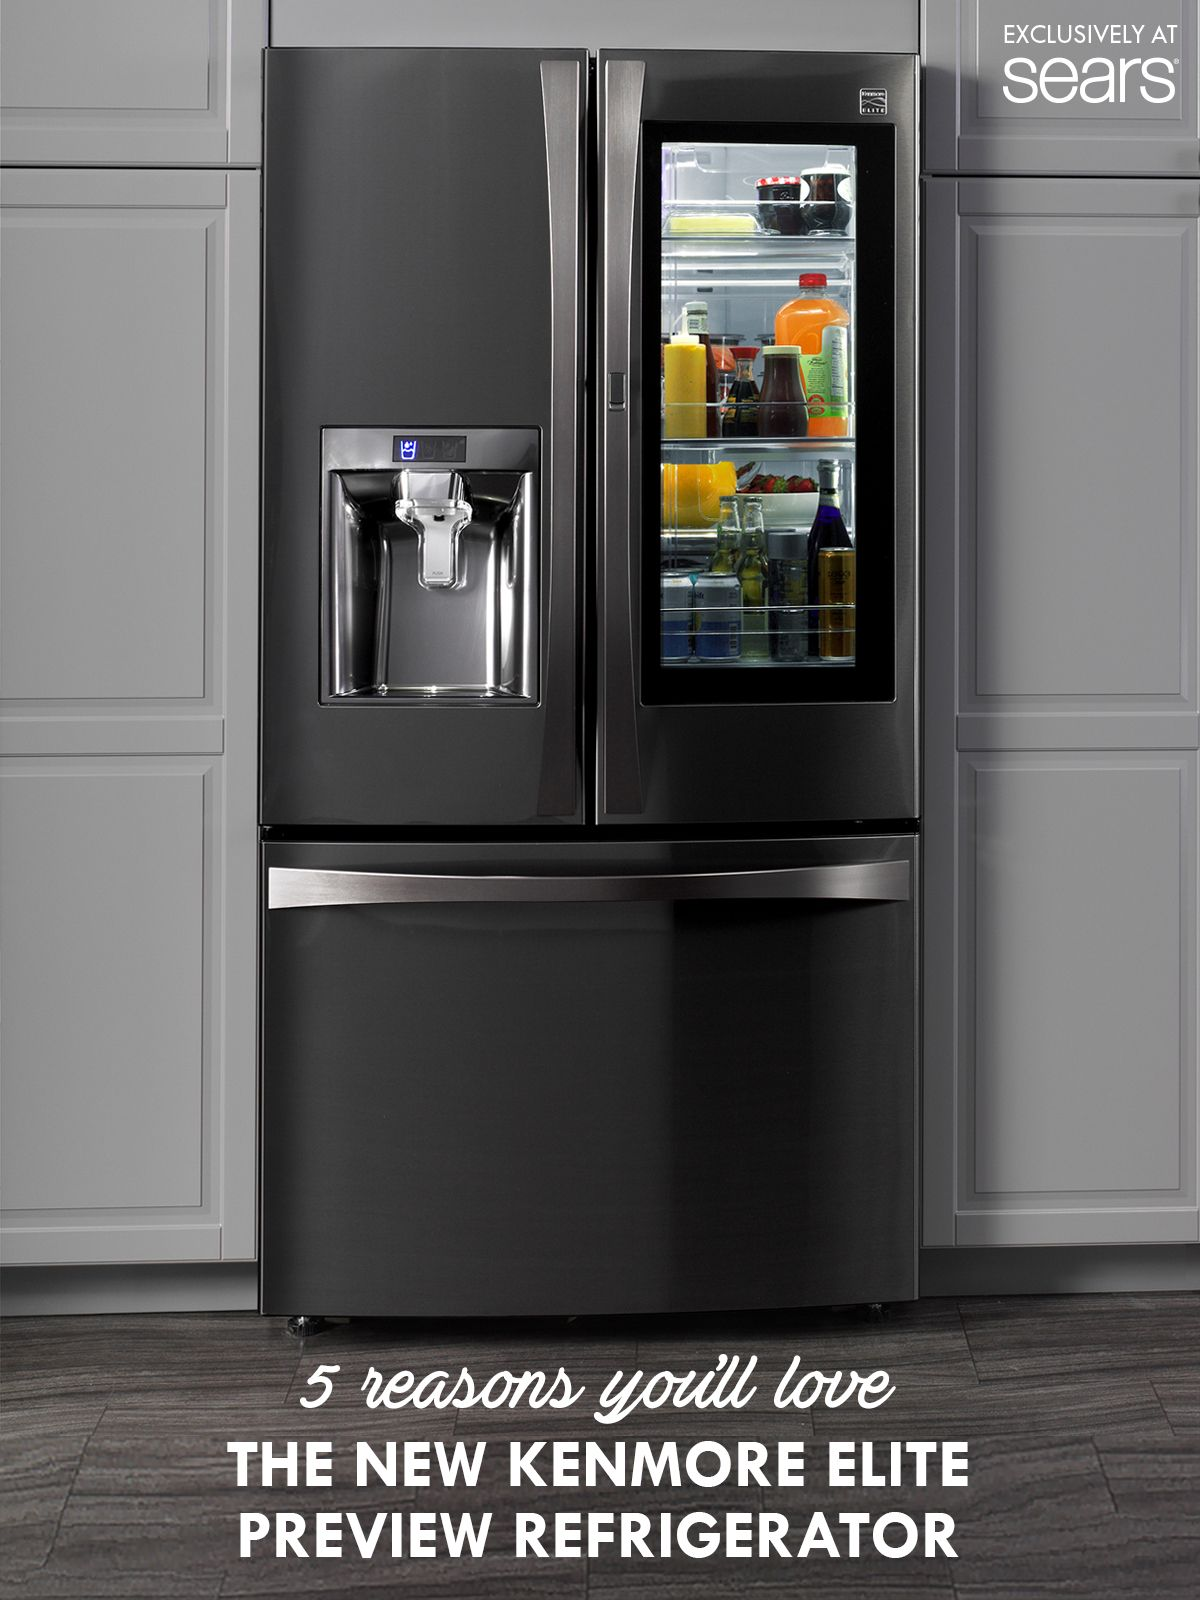 5 Reasons You'll Love the New Kenmore Elite PreView